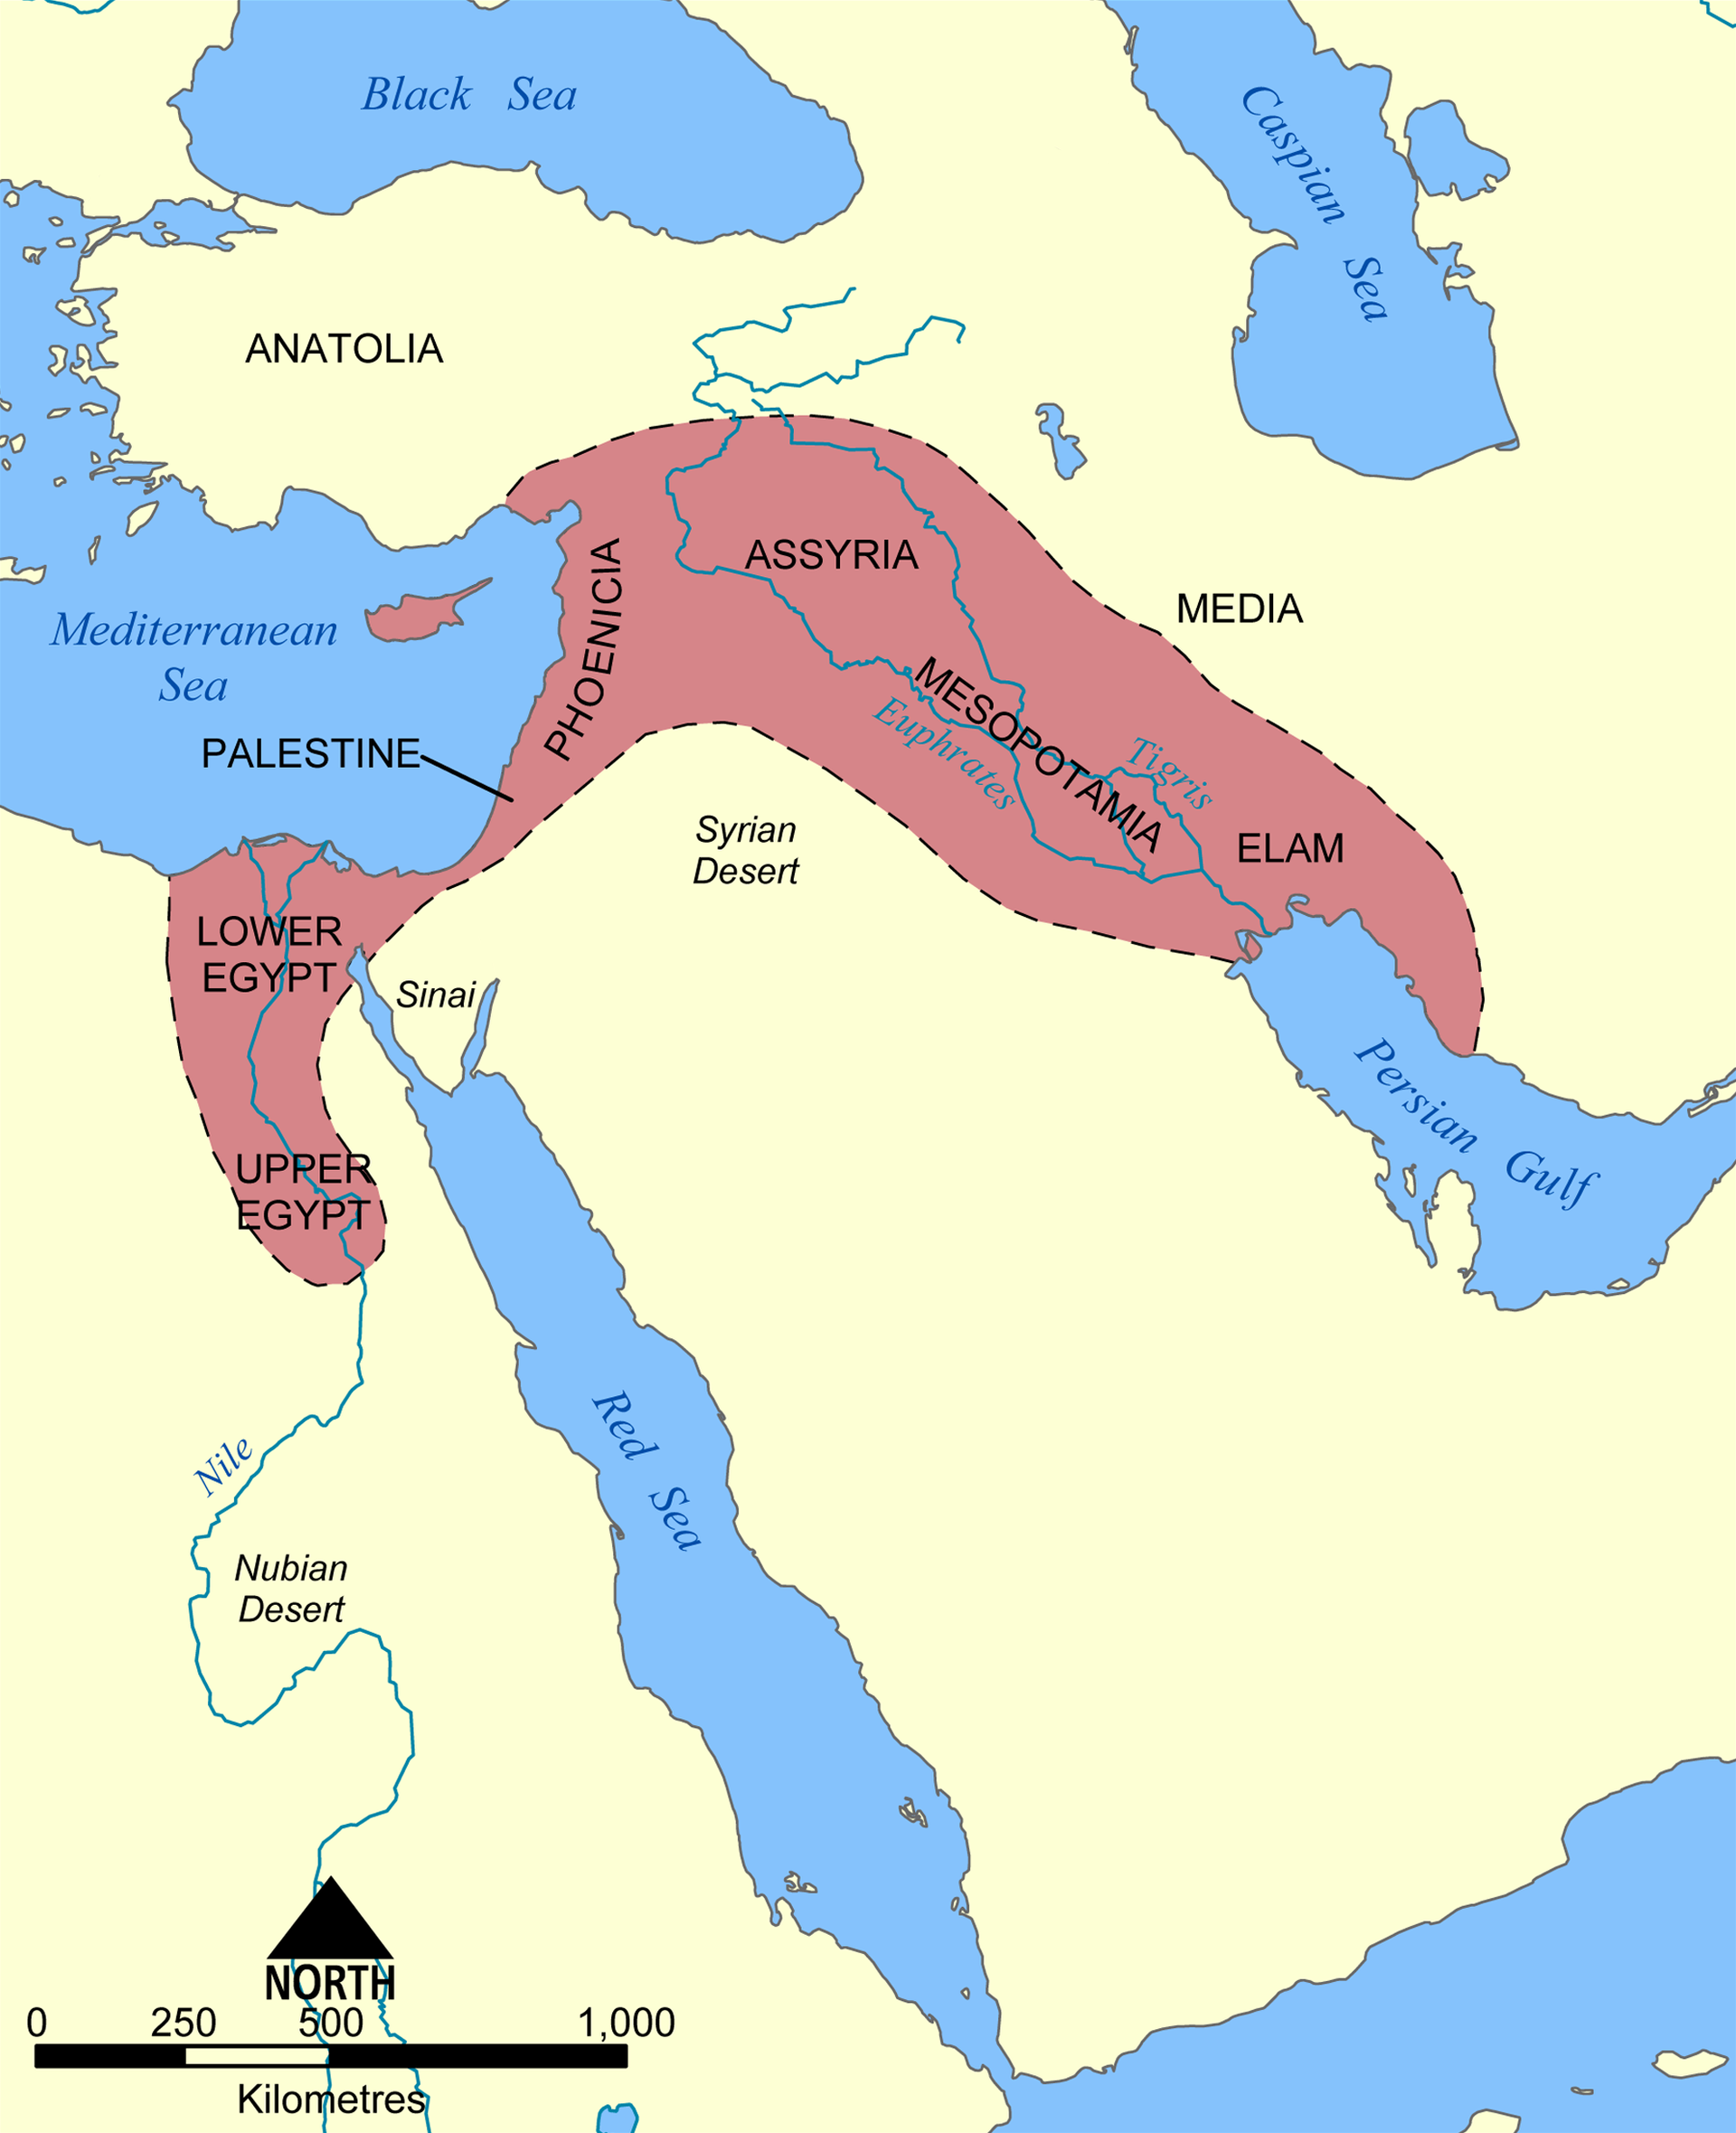 Fertile crescent wikipedia for Land and soil resources wikipedia